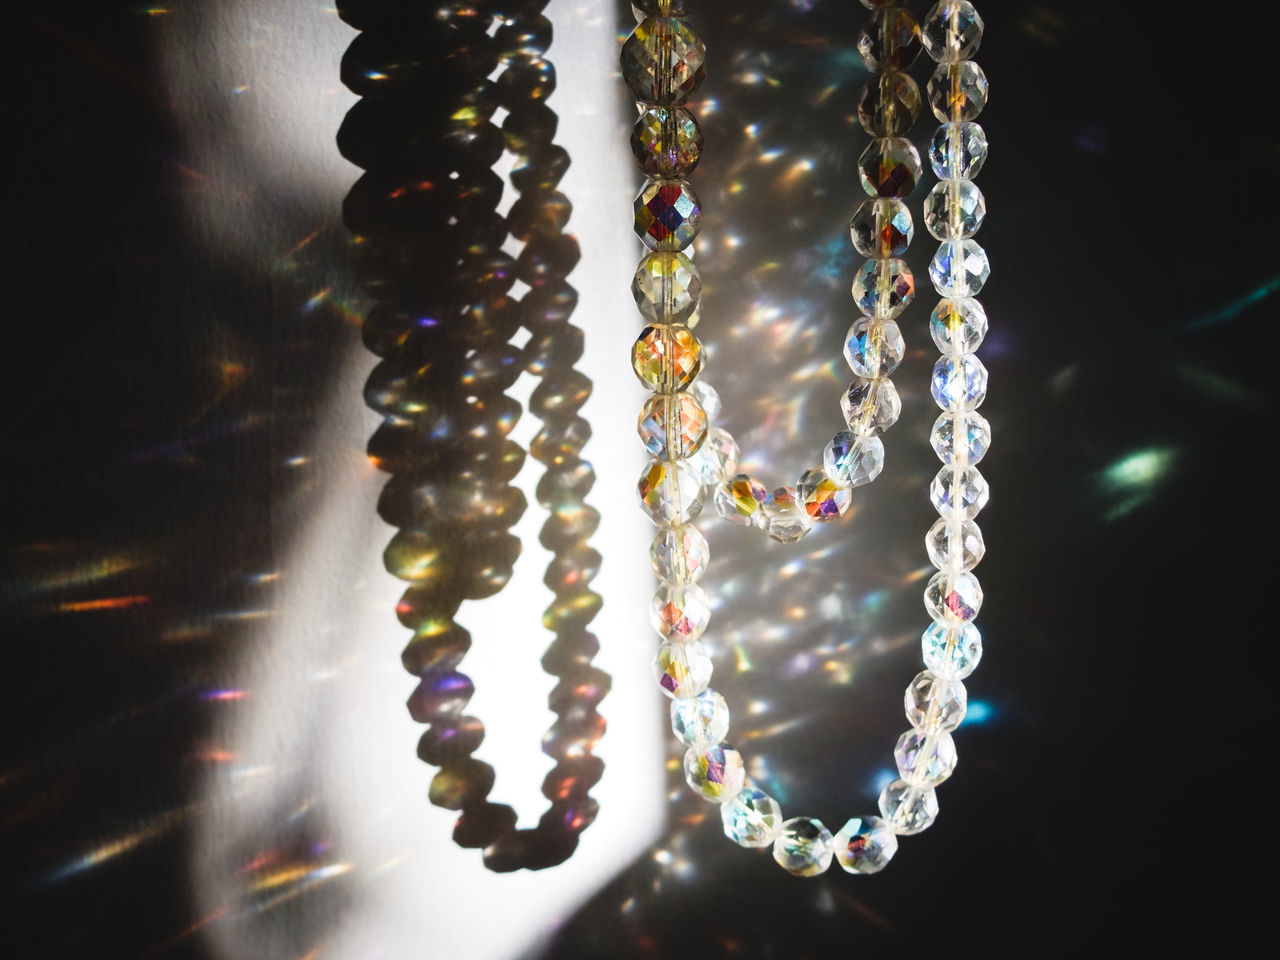 Bead Close-up Day Hanging Indoors  Jewellery Light And Shadow Multi Colored Necklace No People